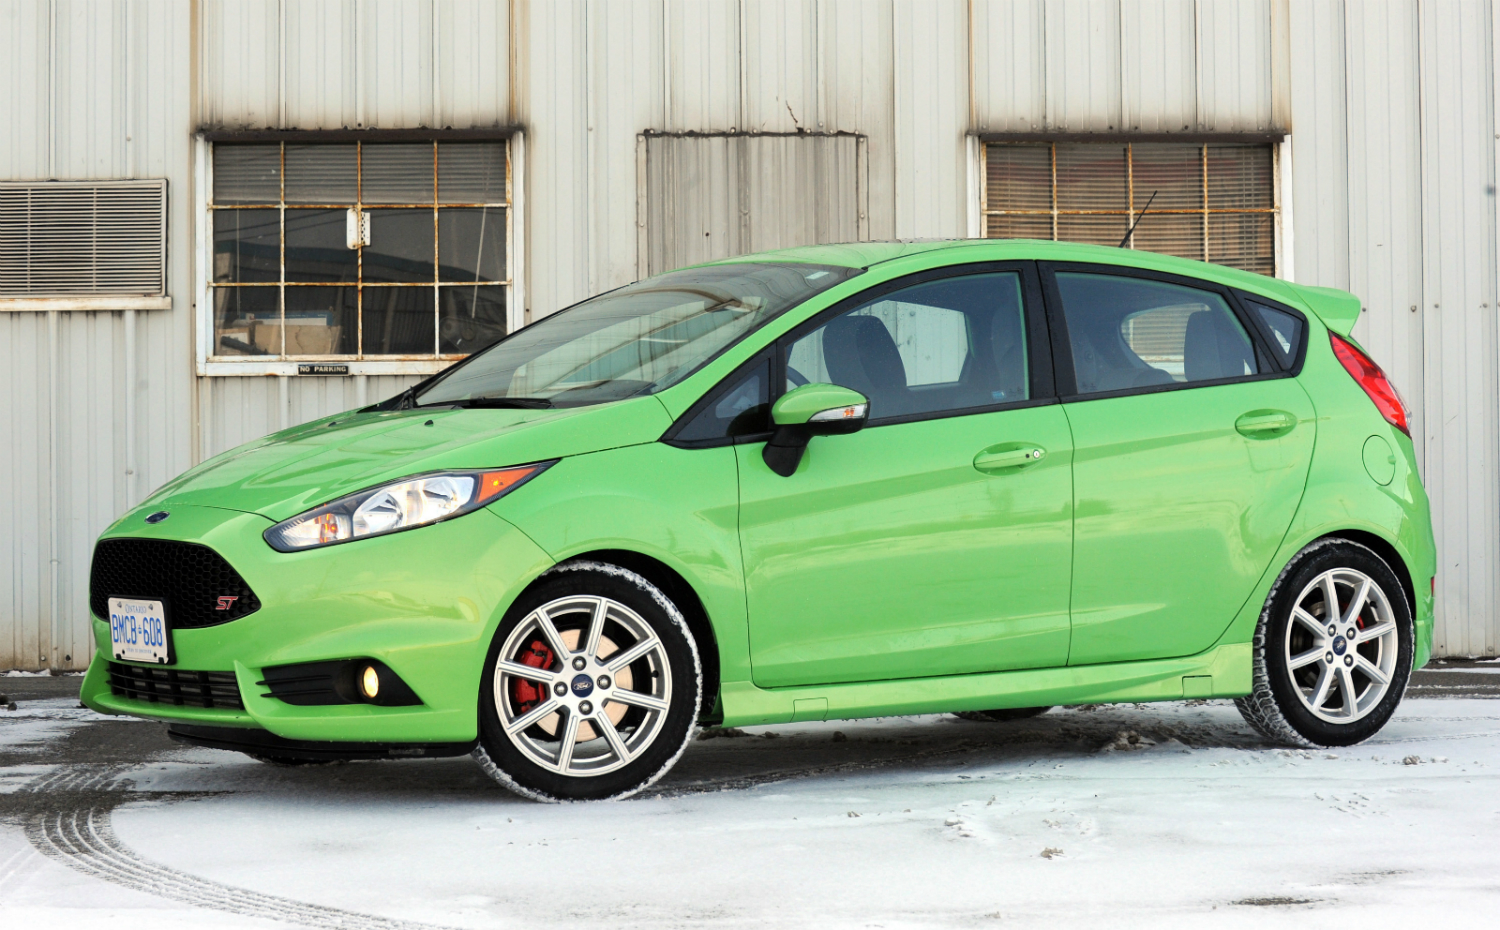 Rob's Top Five Best Cars of 2014